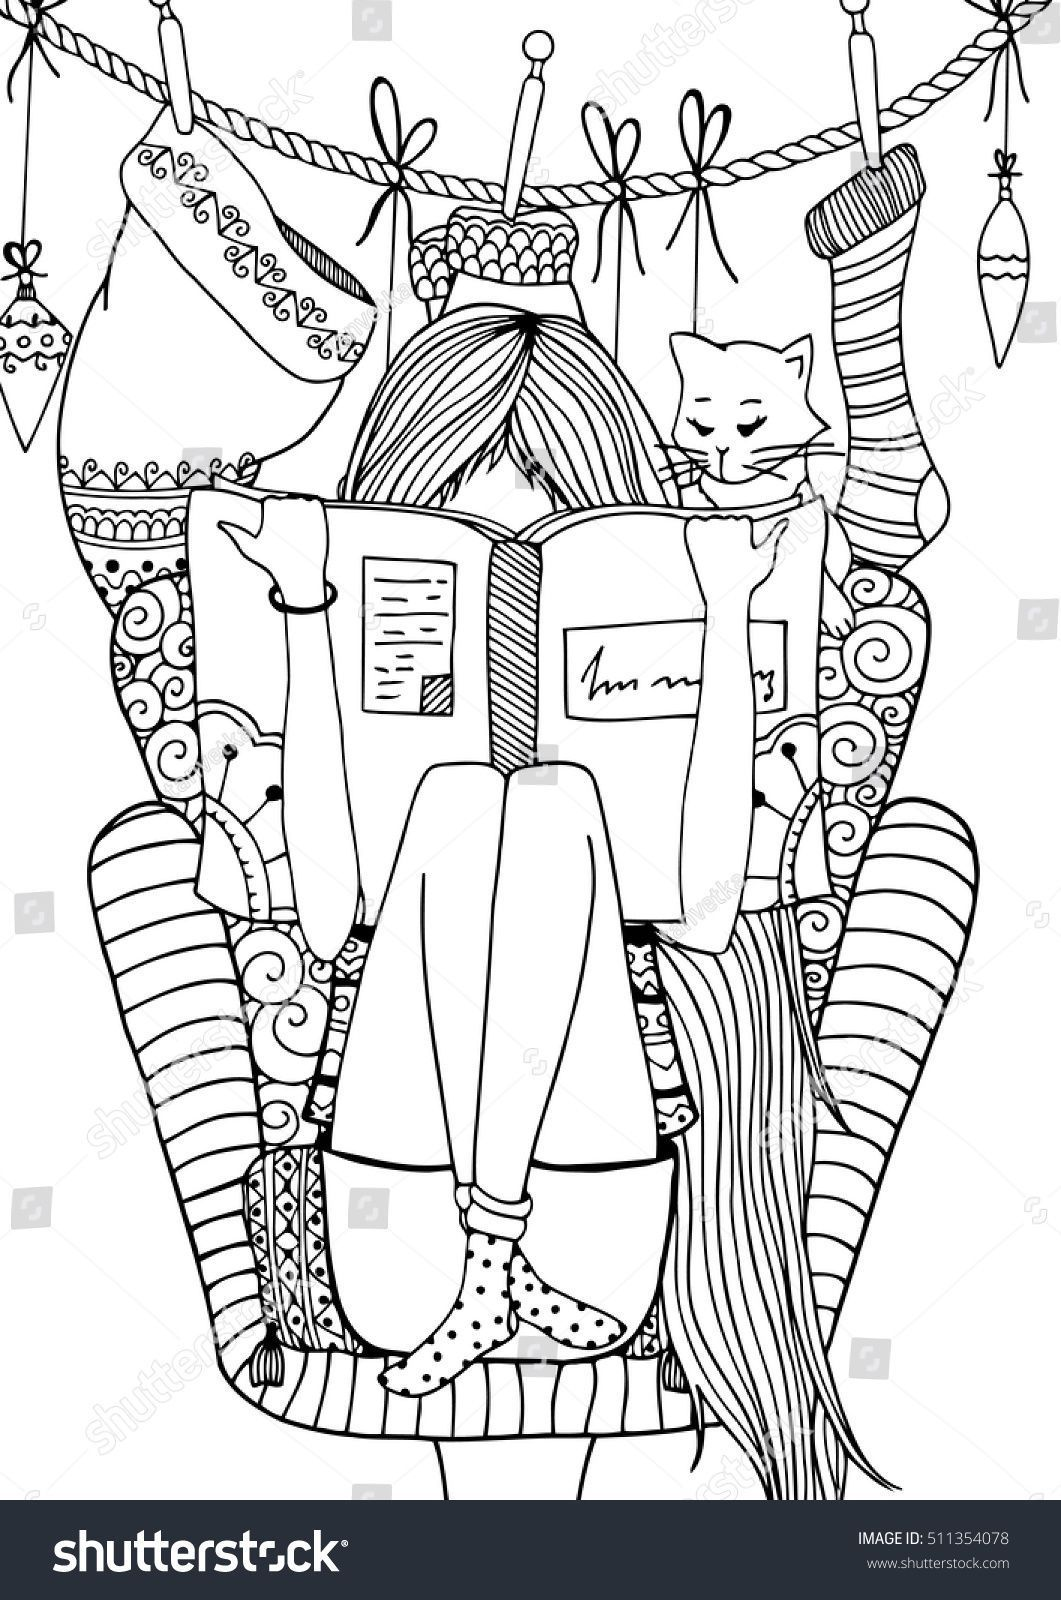 Vector Illustration Zentangl Girl Sitting In A Chair Reading A Book Doodle Drawing Coloring Book Anti Stre Coloring Books Doodle Drawings Cute Coloring Pages